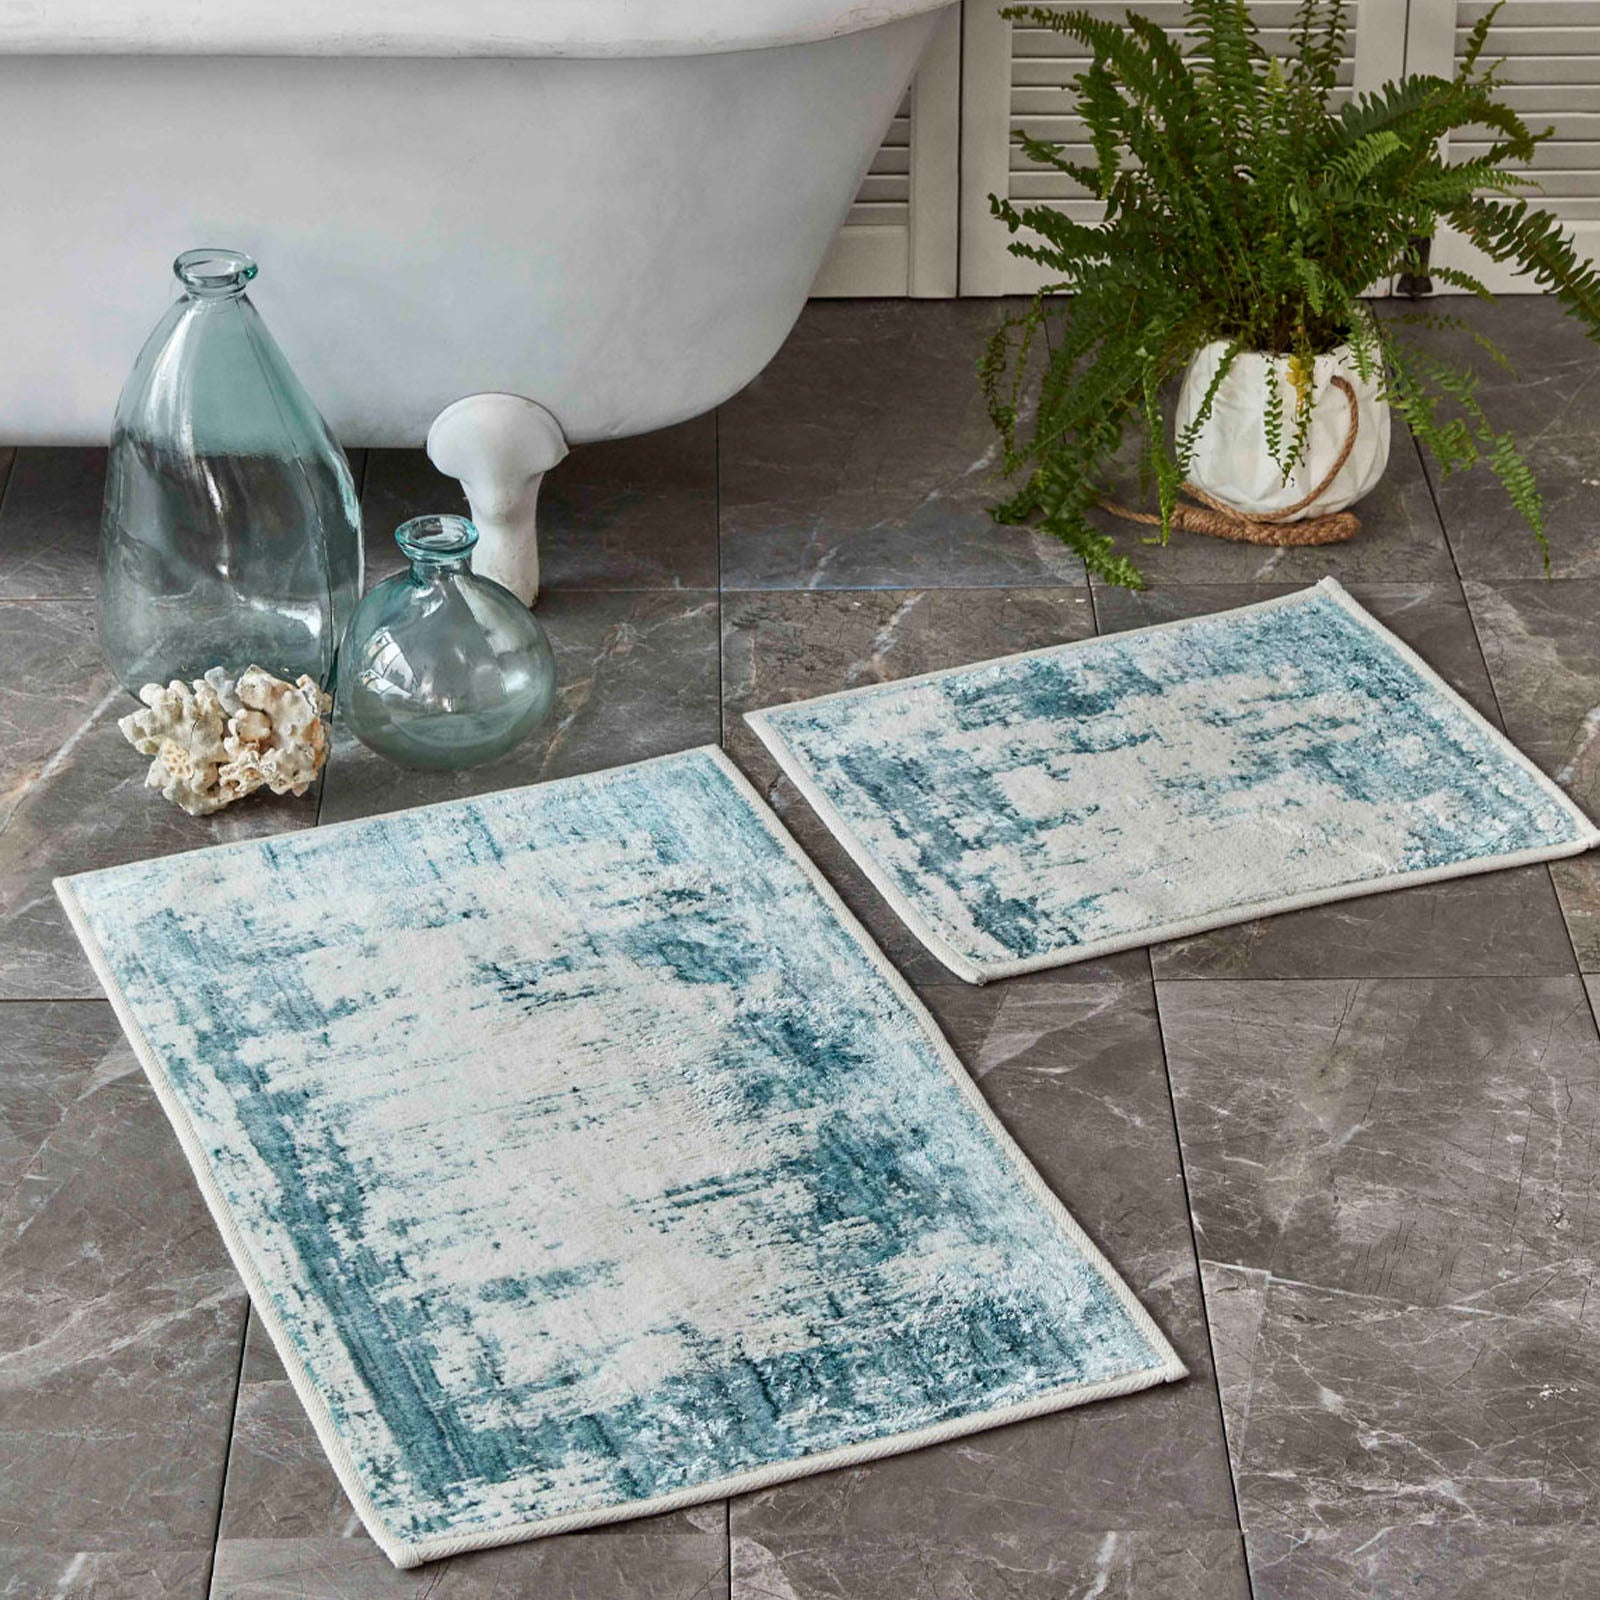 Sarah Anderson Lery blue 2-Piece Bath Mat 160.02.01.0363 -  سجادة حمام قطعتين زرقاء ليري من سارة أندرسون - Shop Online Furniture and Home Decor Store in Dubai, UAE at ebarza